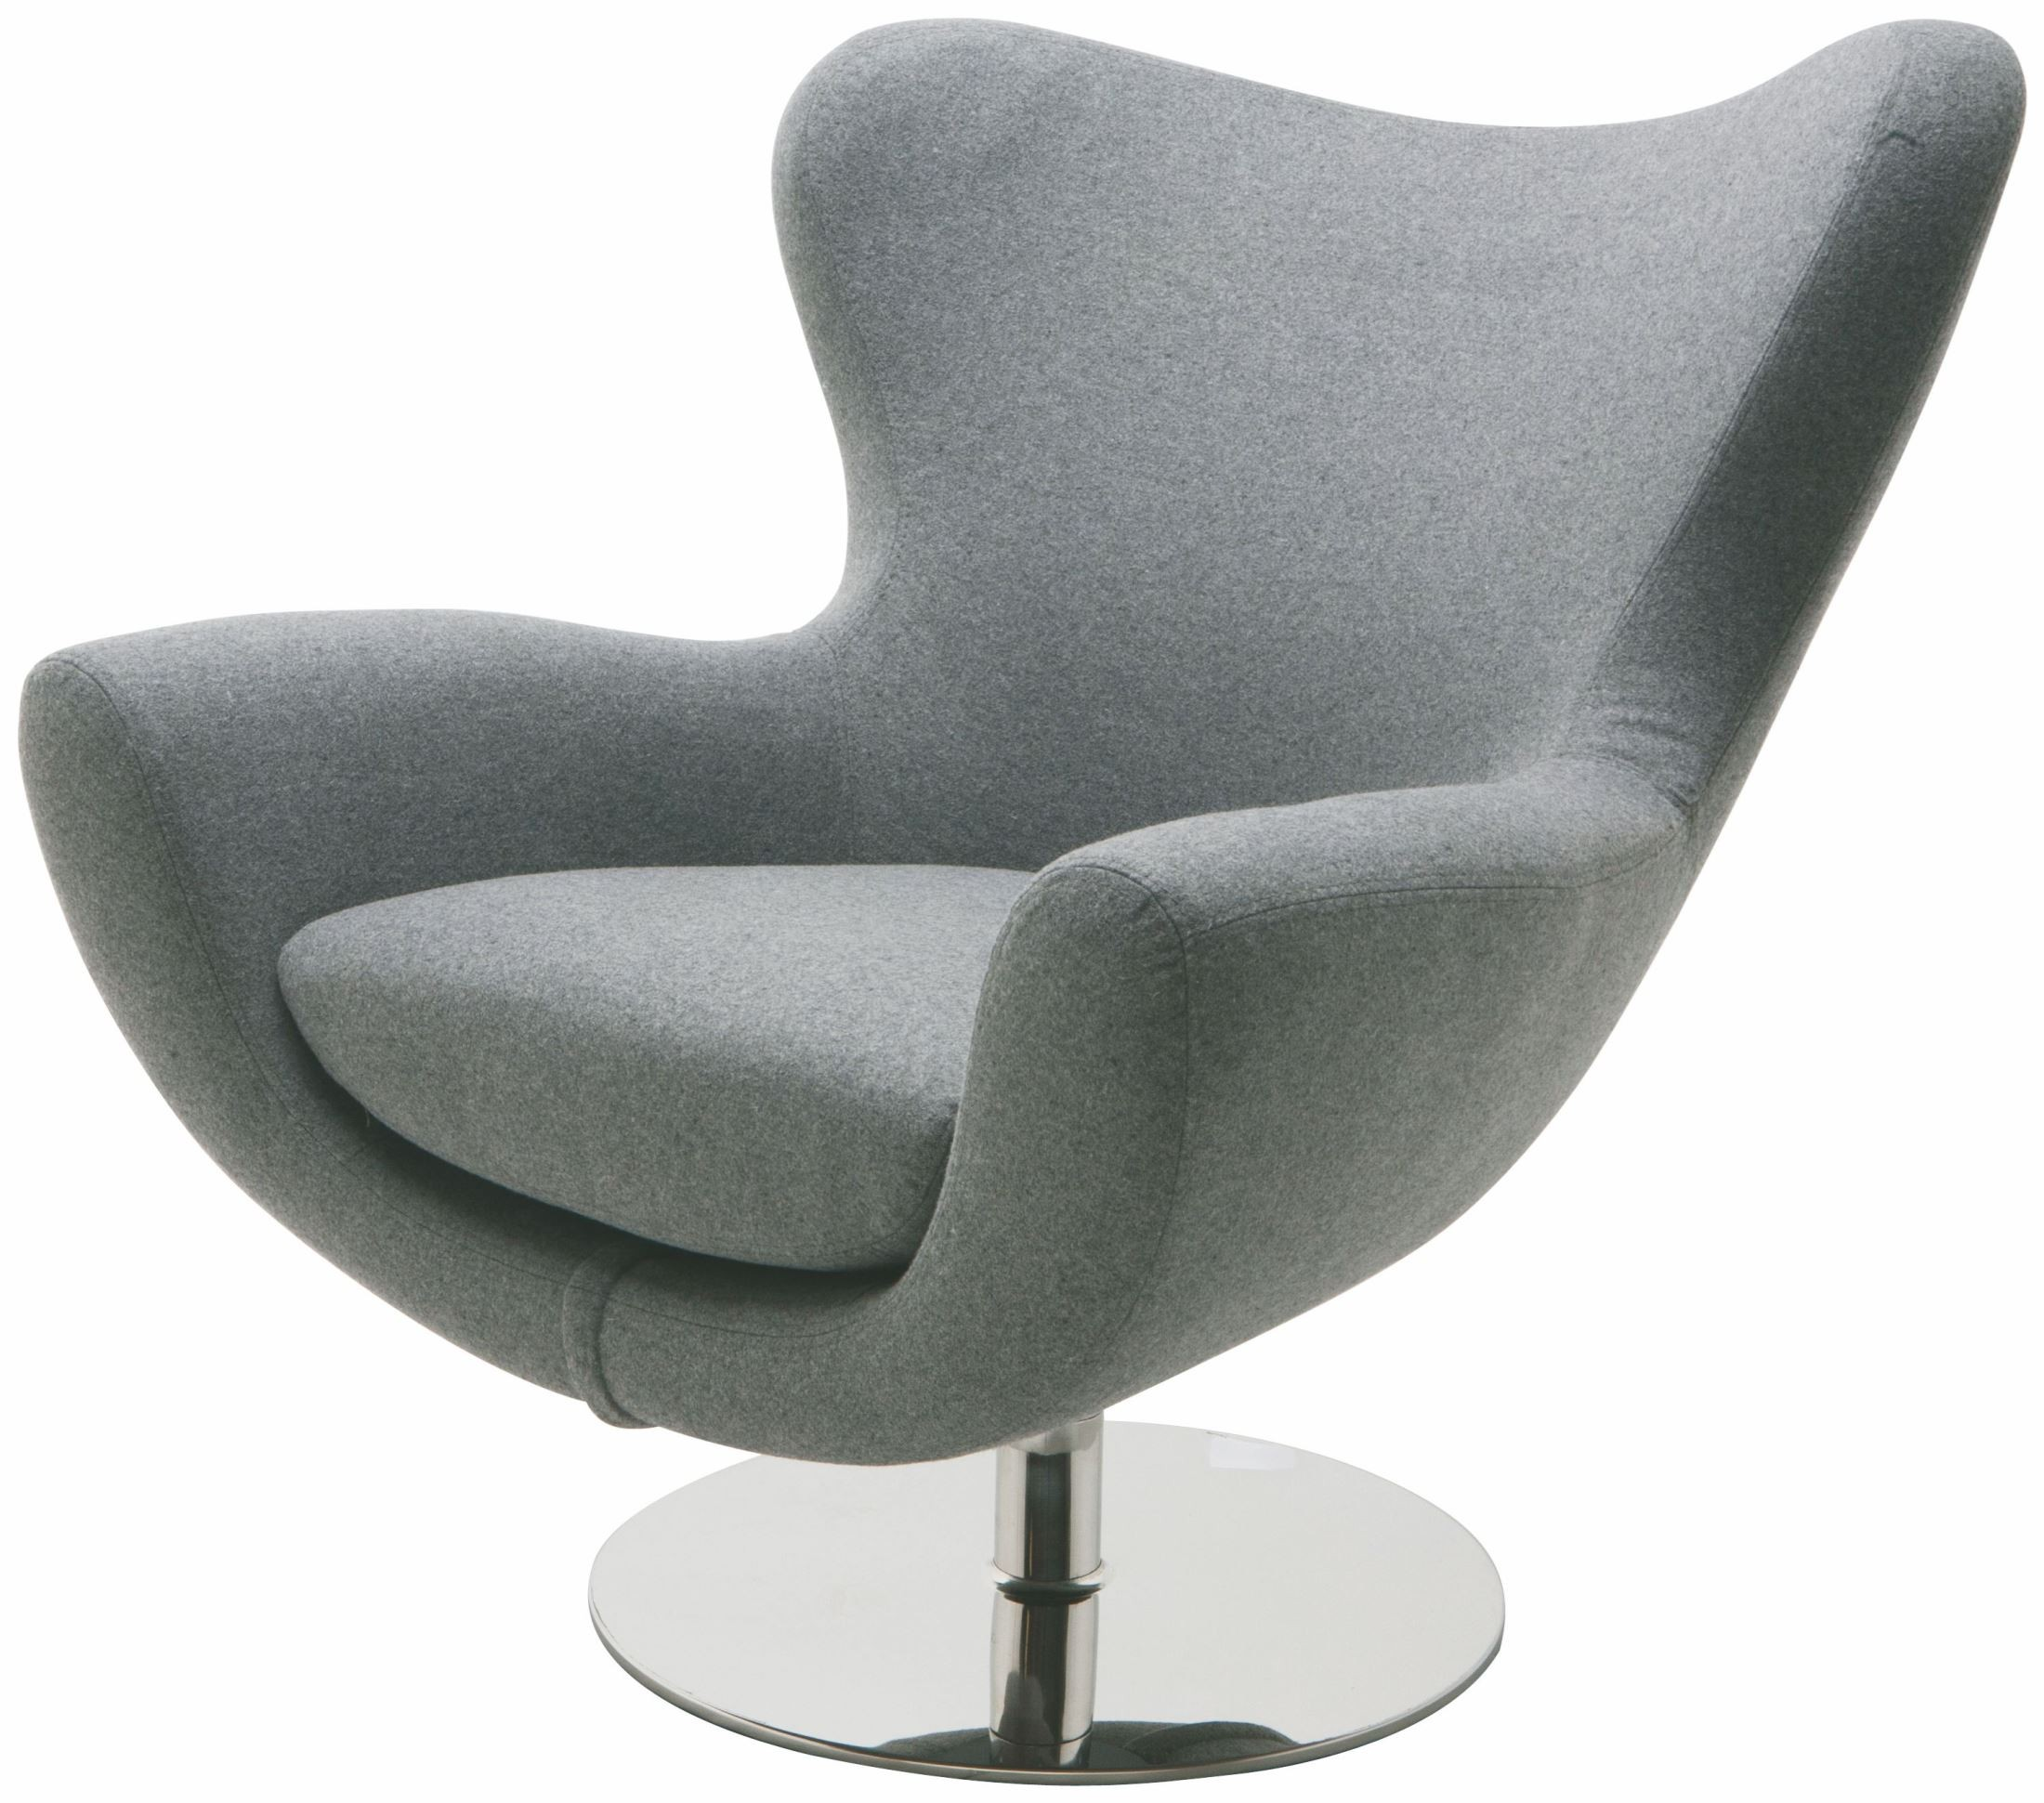 Round Comfy Chair Conner Light Grey Fabric Lounger Chair From Nuevo